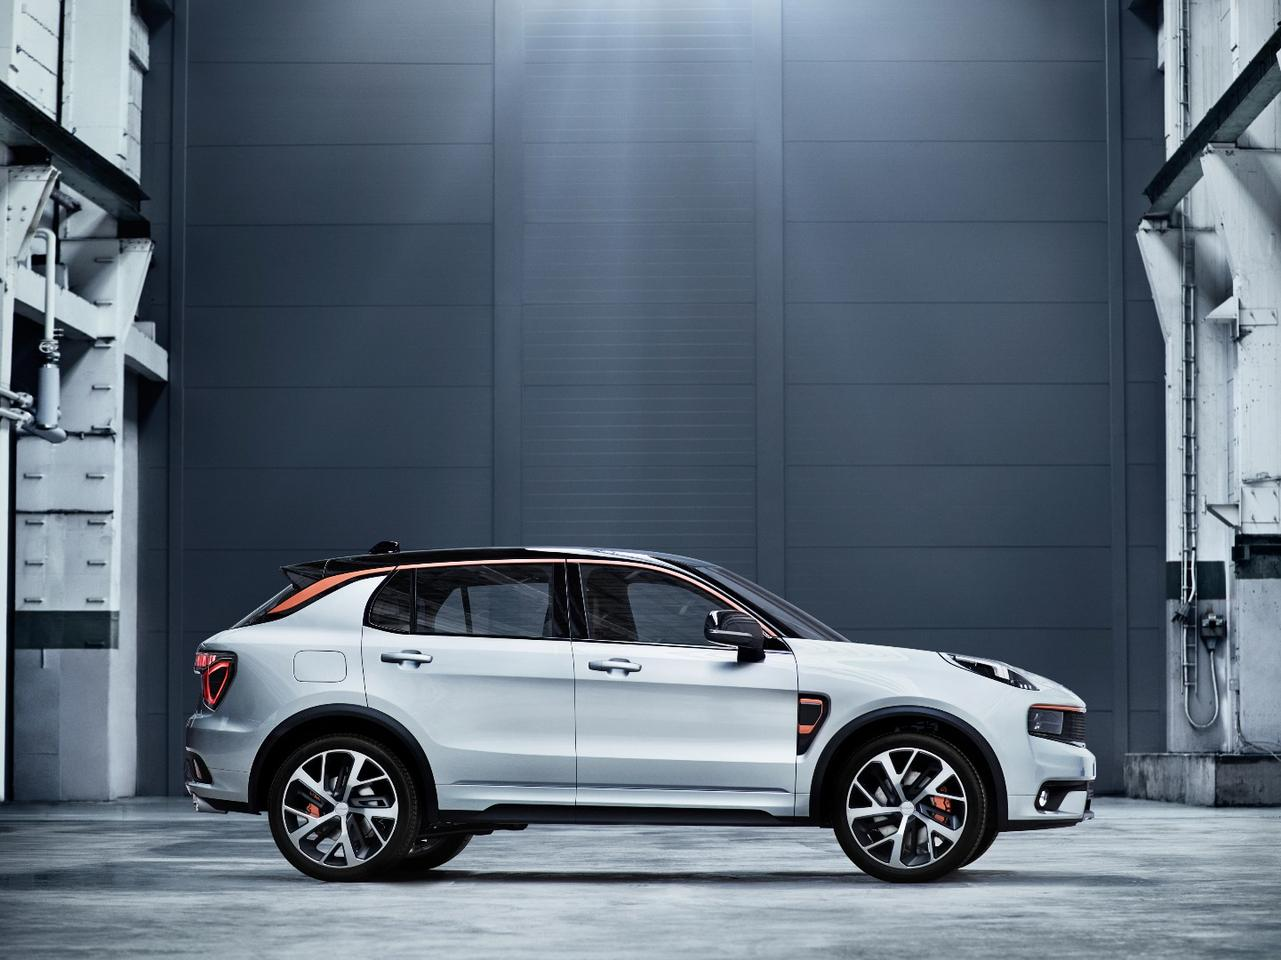 The Lynk & Co 01 shares parts with Volvos